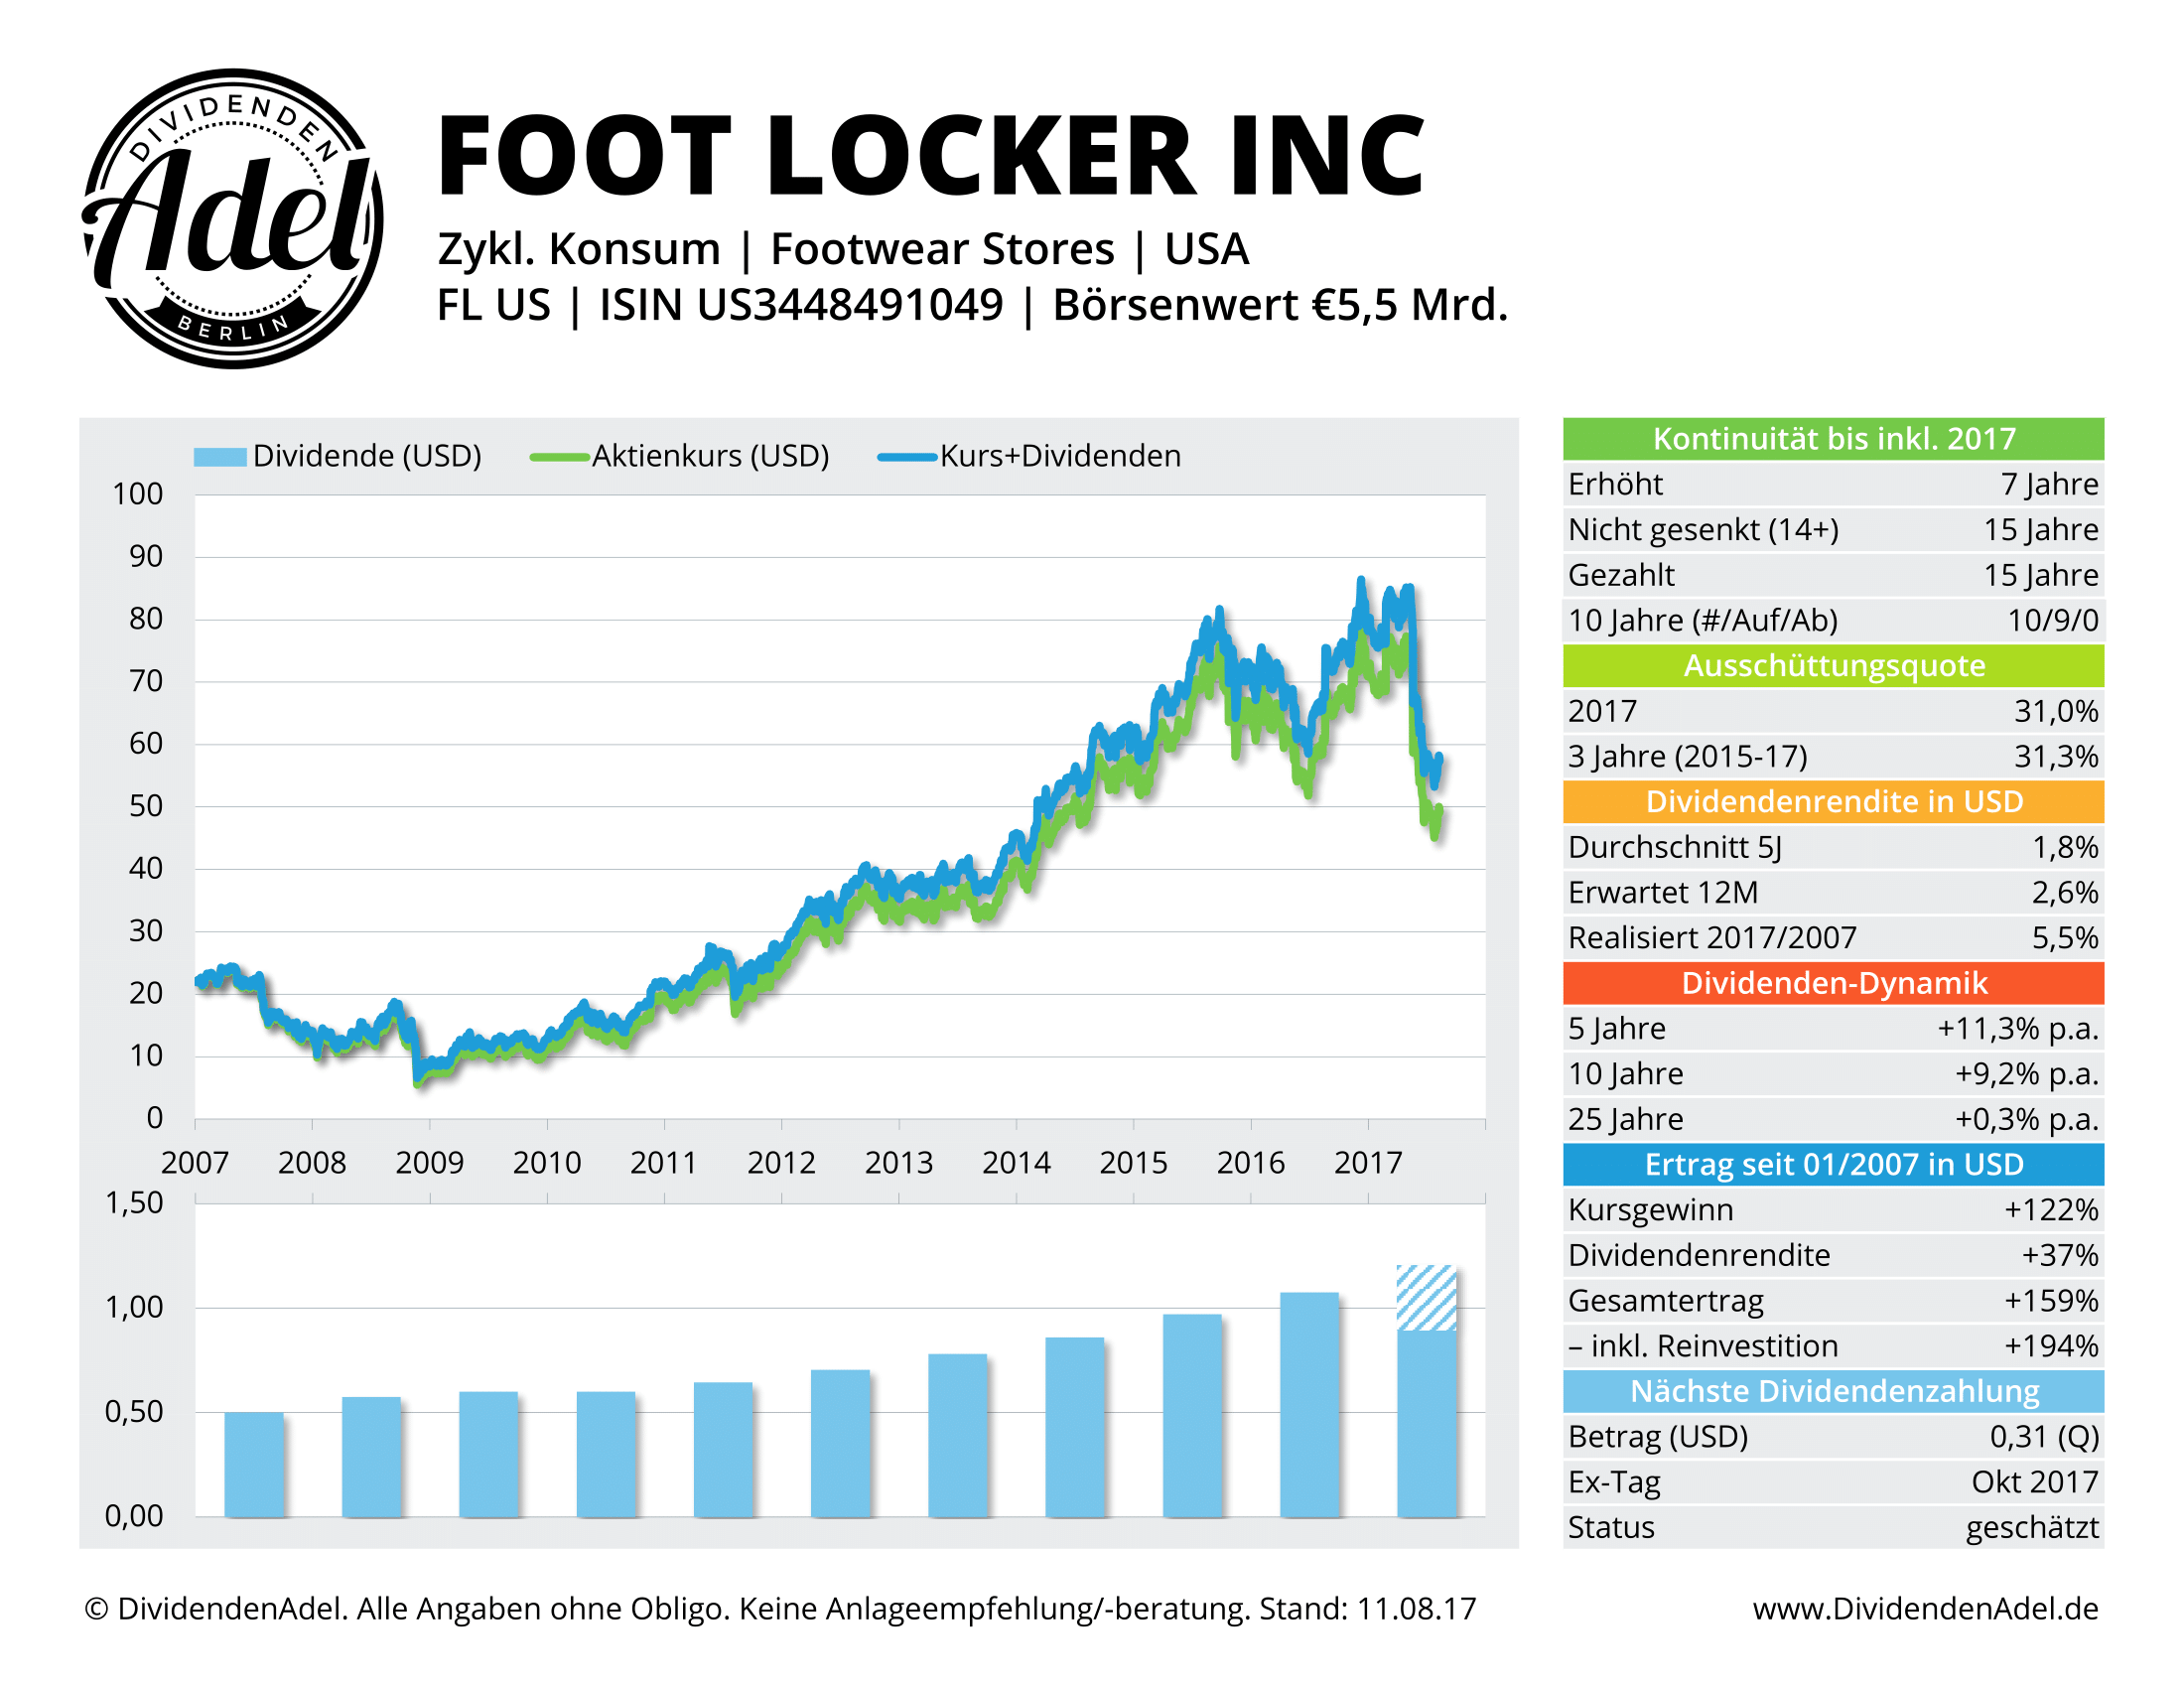 2017-08-11 54 FOOT LOCKER INC DividendenAdel-Profil ab 2007-1